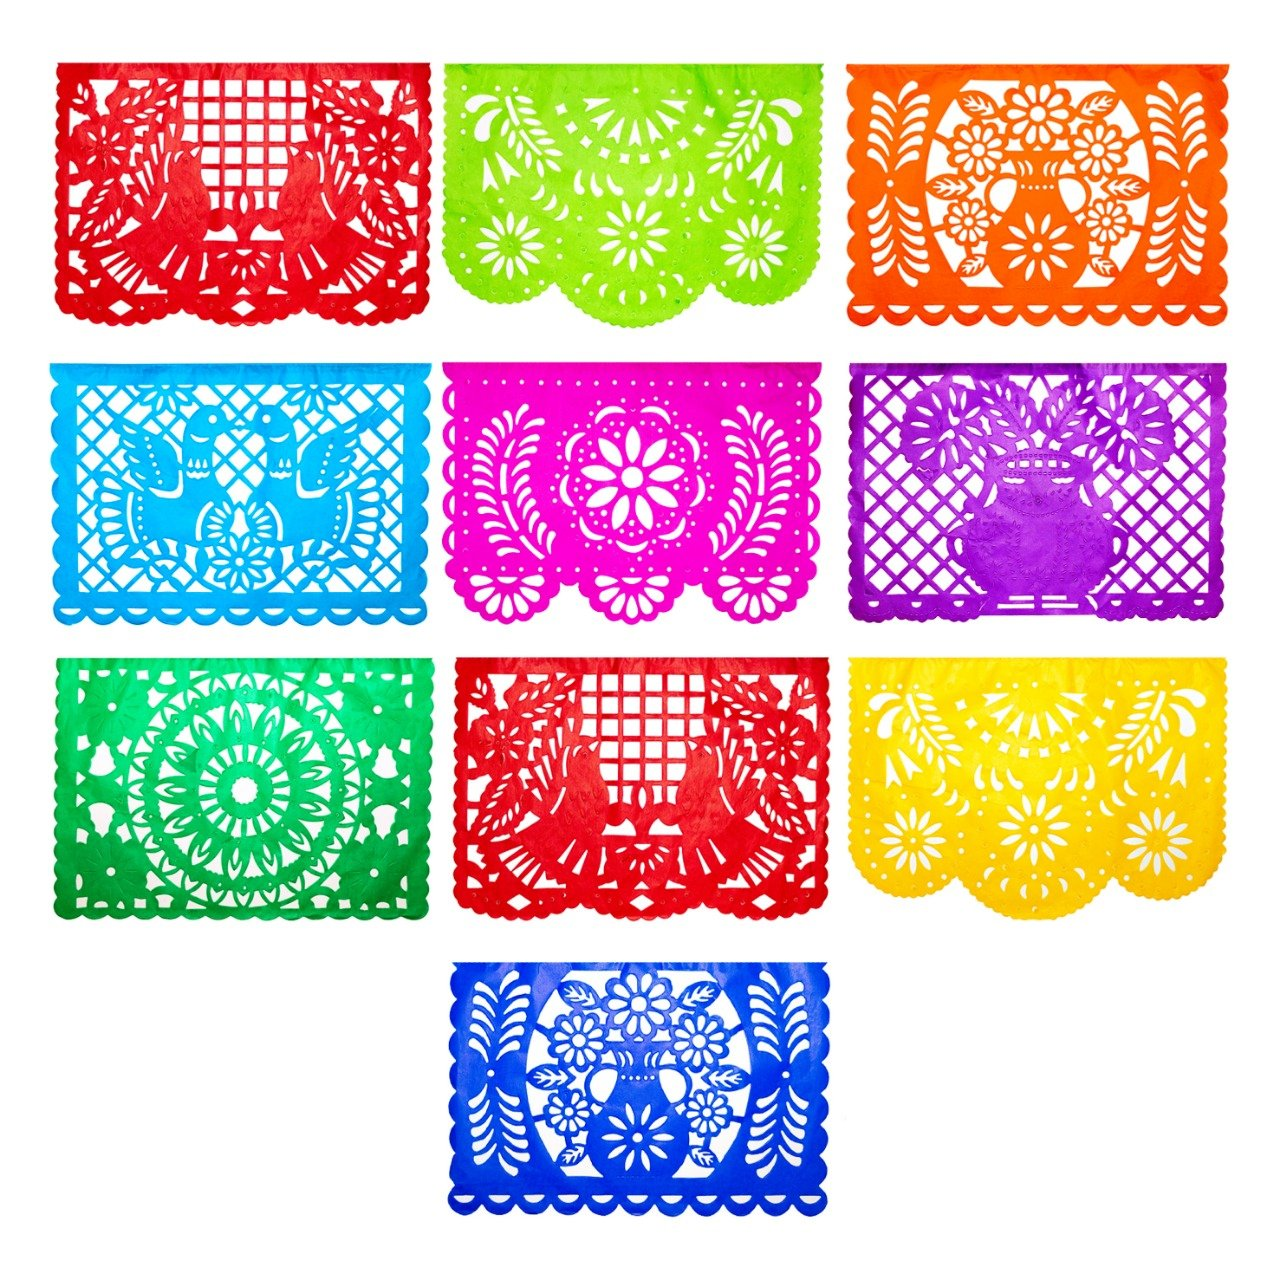 Mexican Fiesta Papel Picado Banner 4 Pack, Each Banner 14 feet Long with 10 Multi-Colored Panels, 56 feet Long with 40 Panels Total